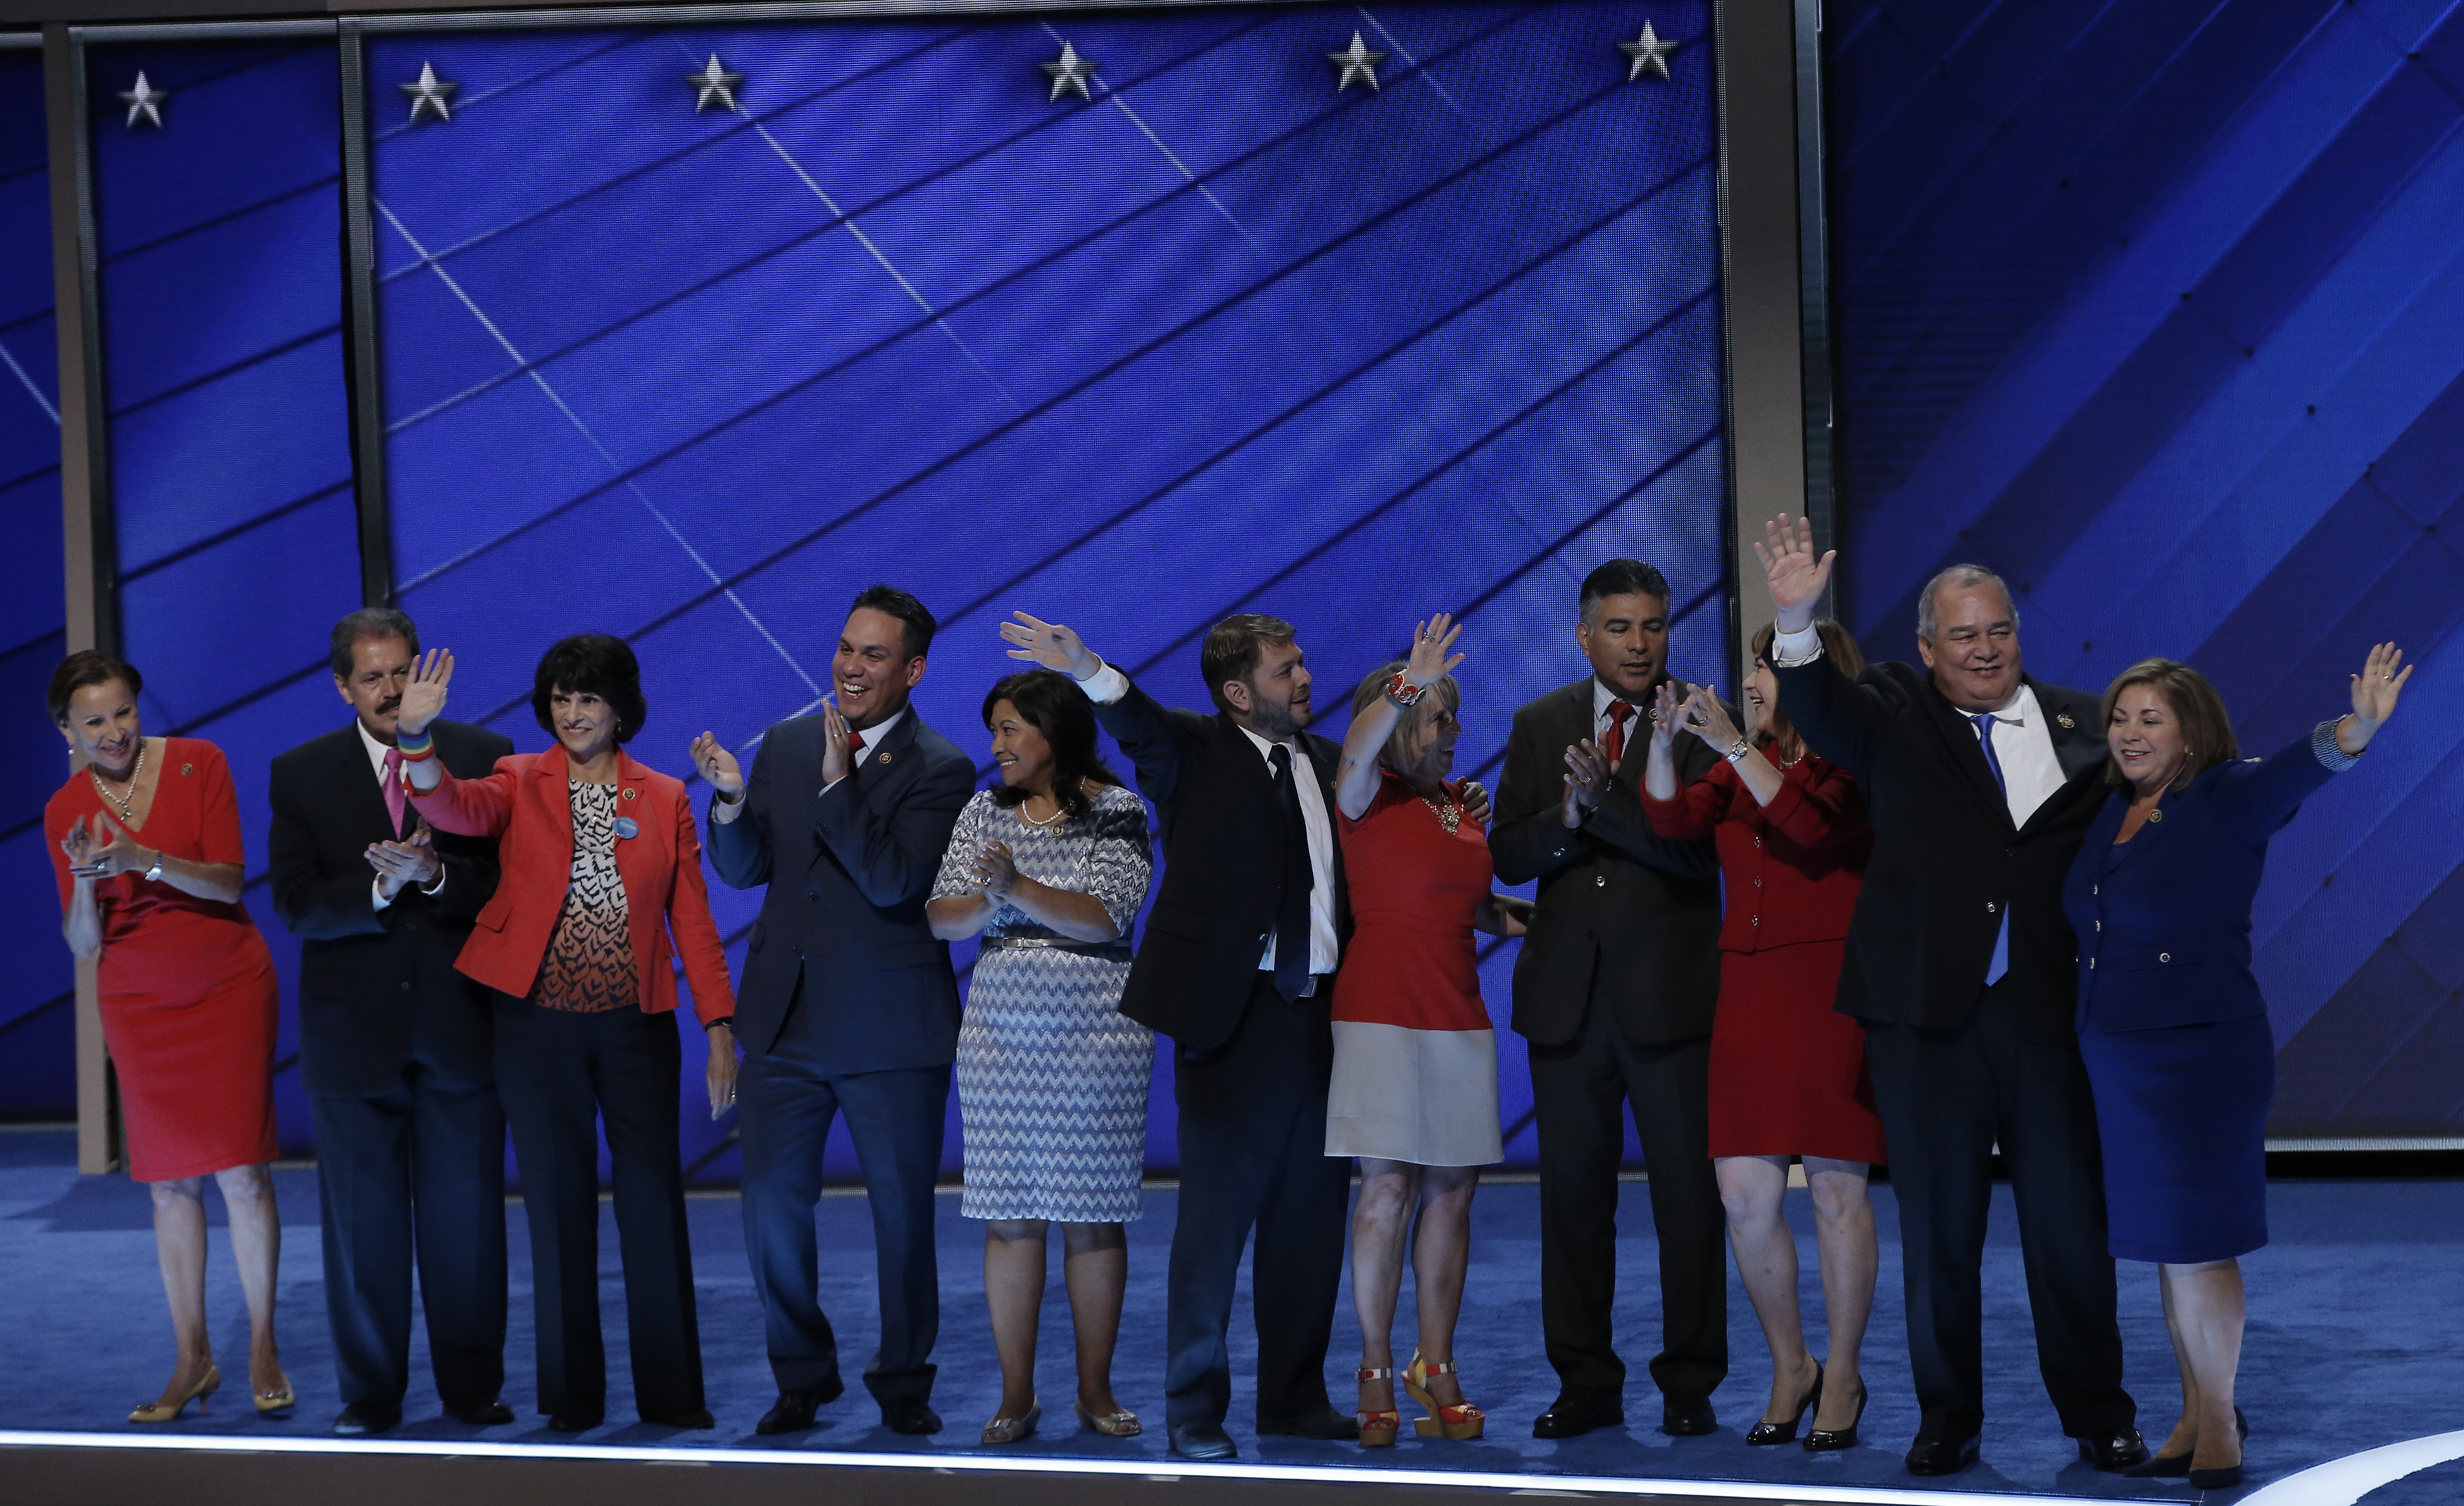 Members of the Congressional Hispanic Caucus stand onstage at the Democratic National Convention REUTERS/Mike Segar